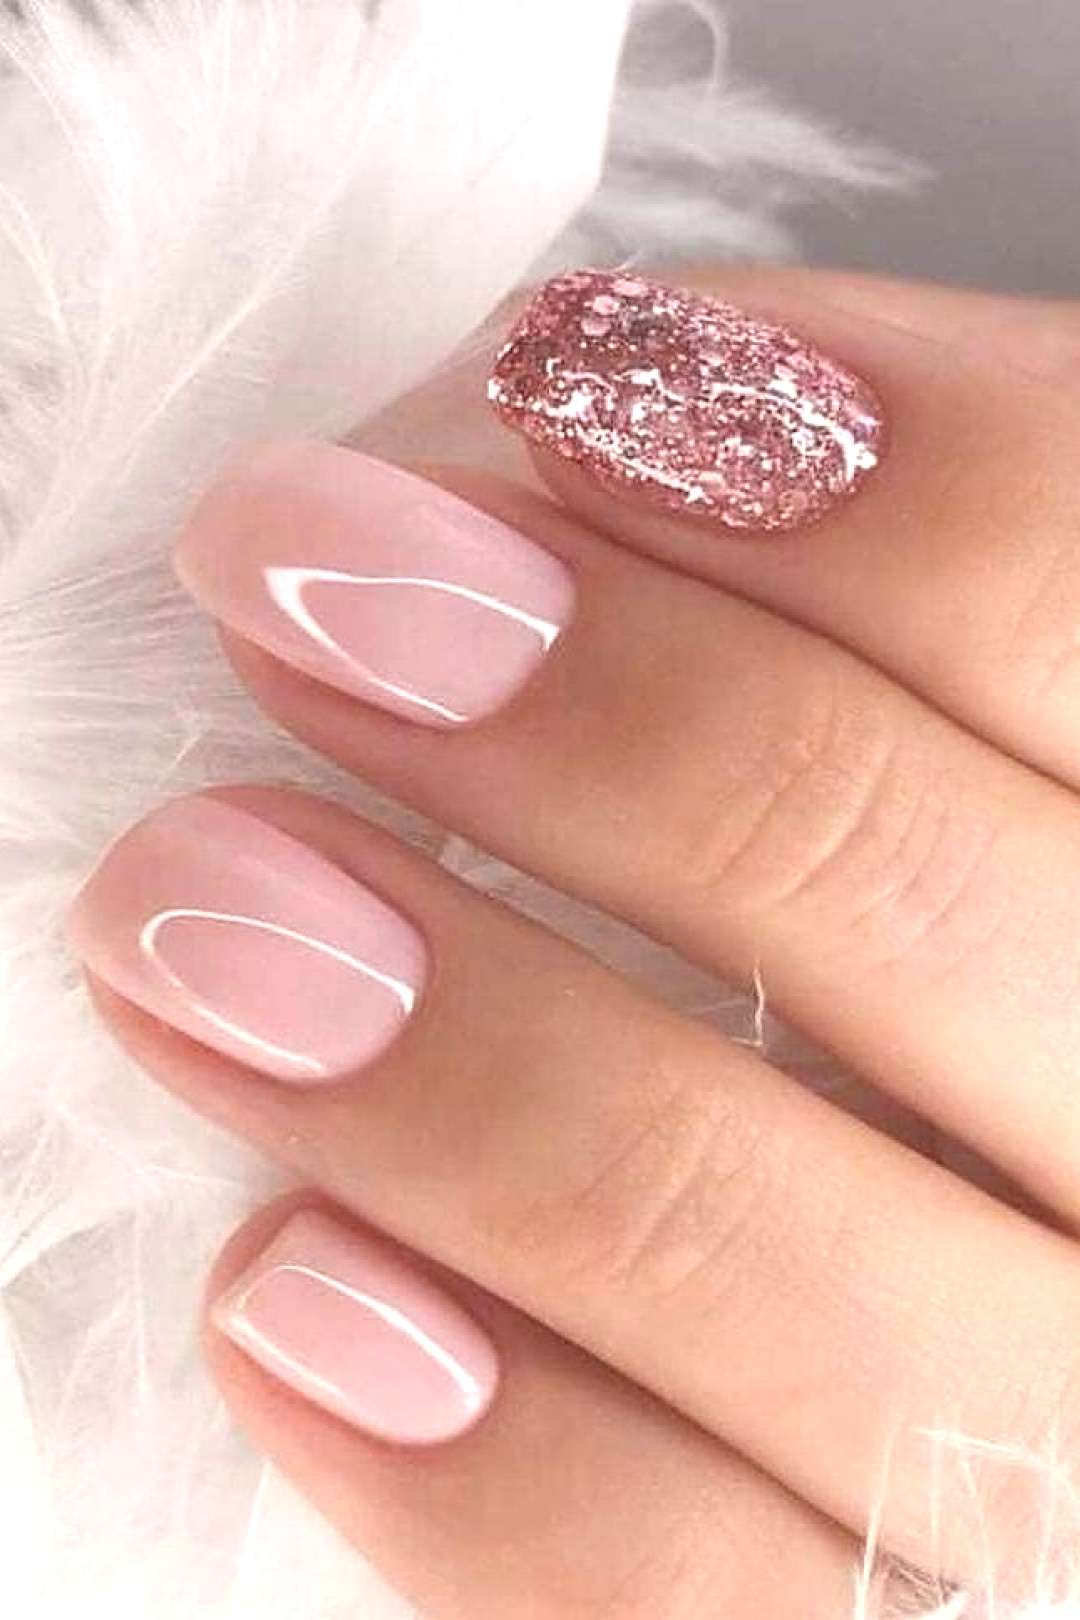 39 Fabulous Ways to Wear Glitter Nails Designs for 2019 Summer! - Page 4 of 39 -  Daily Women Blog!